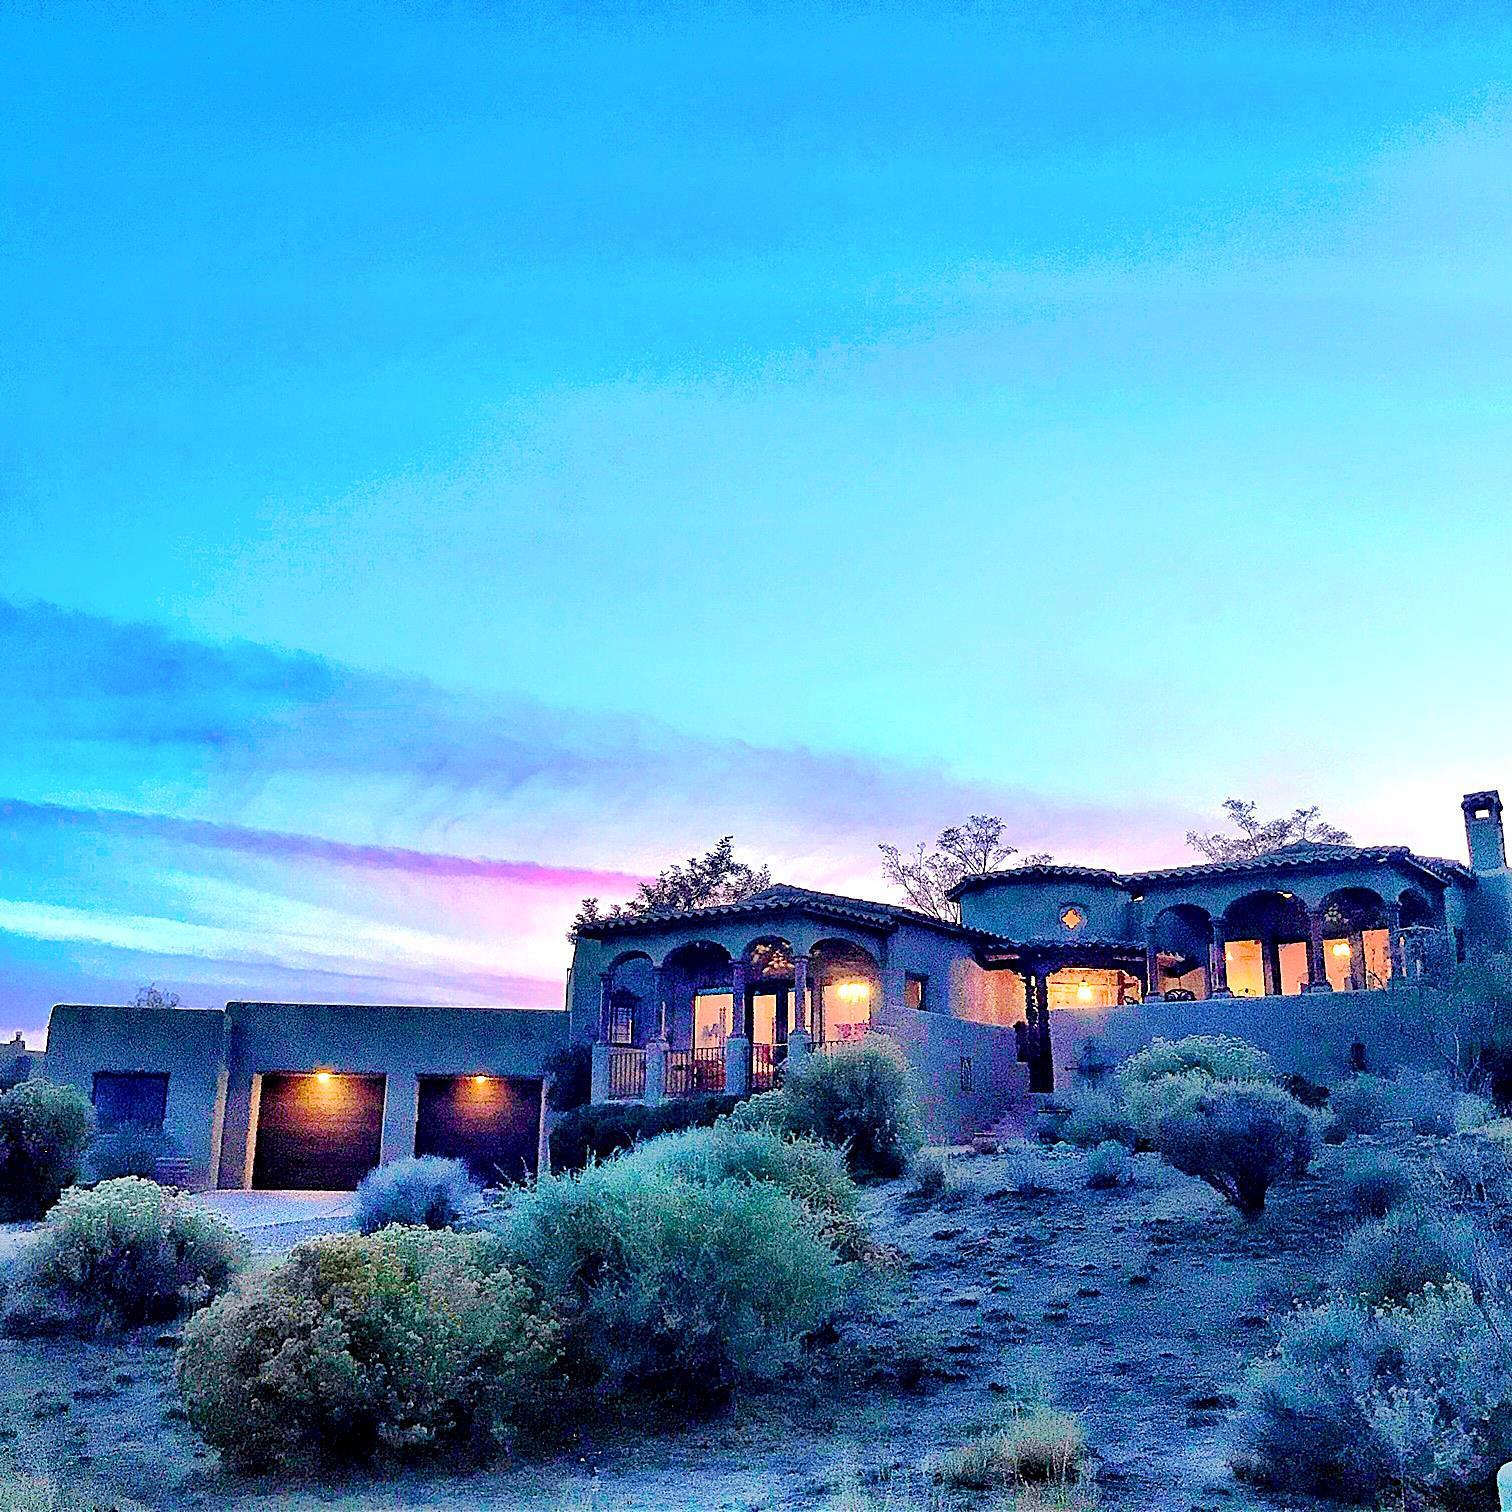 4001 SILVERY MINNOW Place NW Property Photo - Albuquerque, NM real estate listing